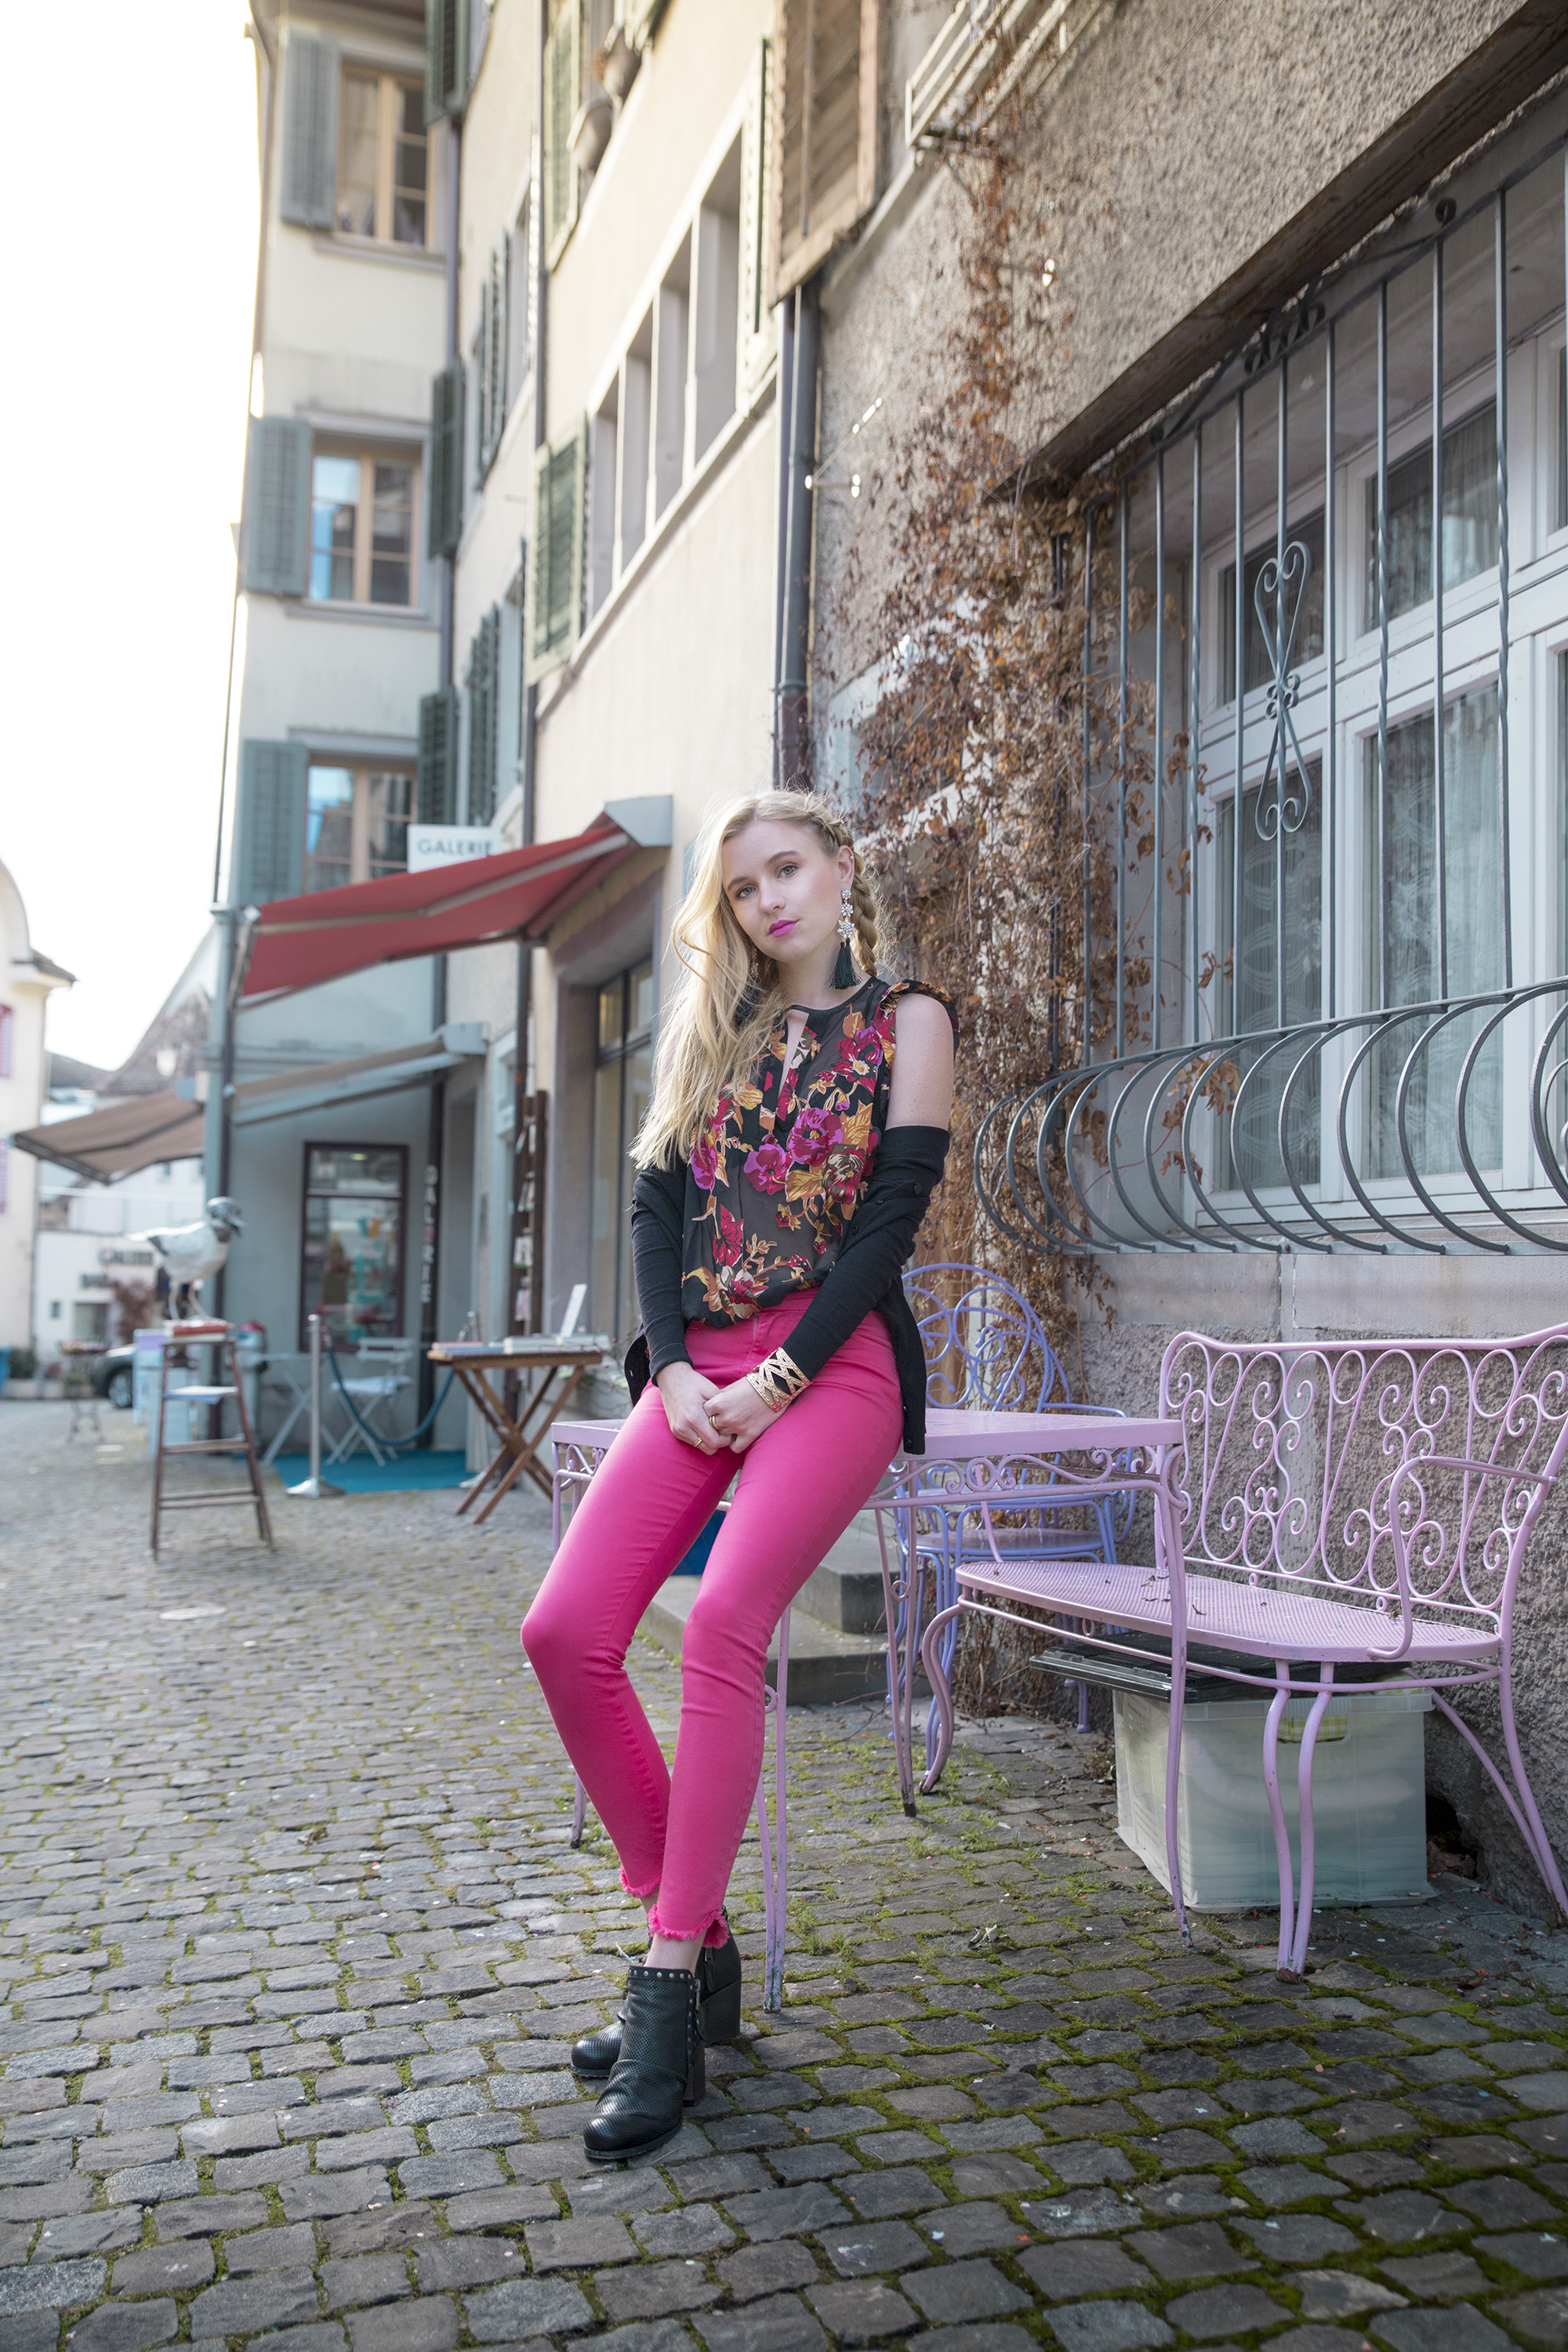 Pink Pants: Knallpinker Start in die neue Frühlings-Saison mit Incognito